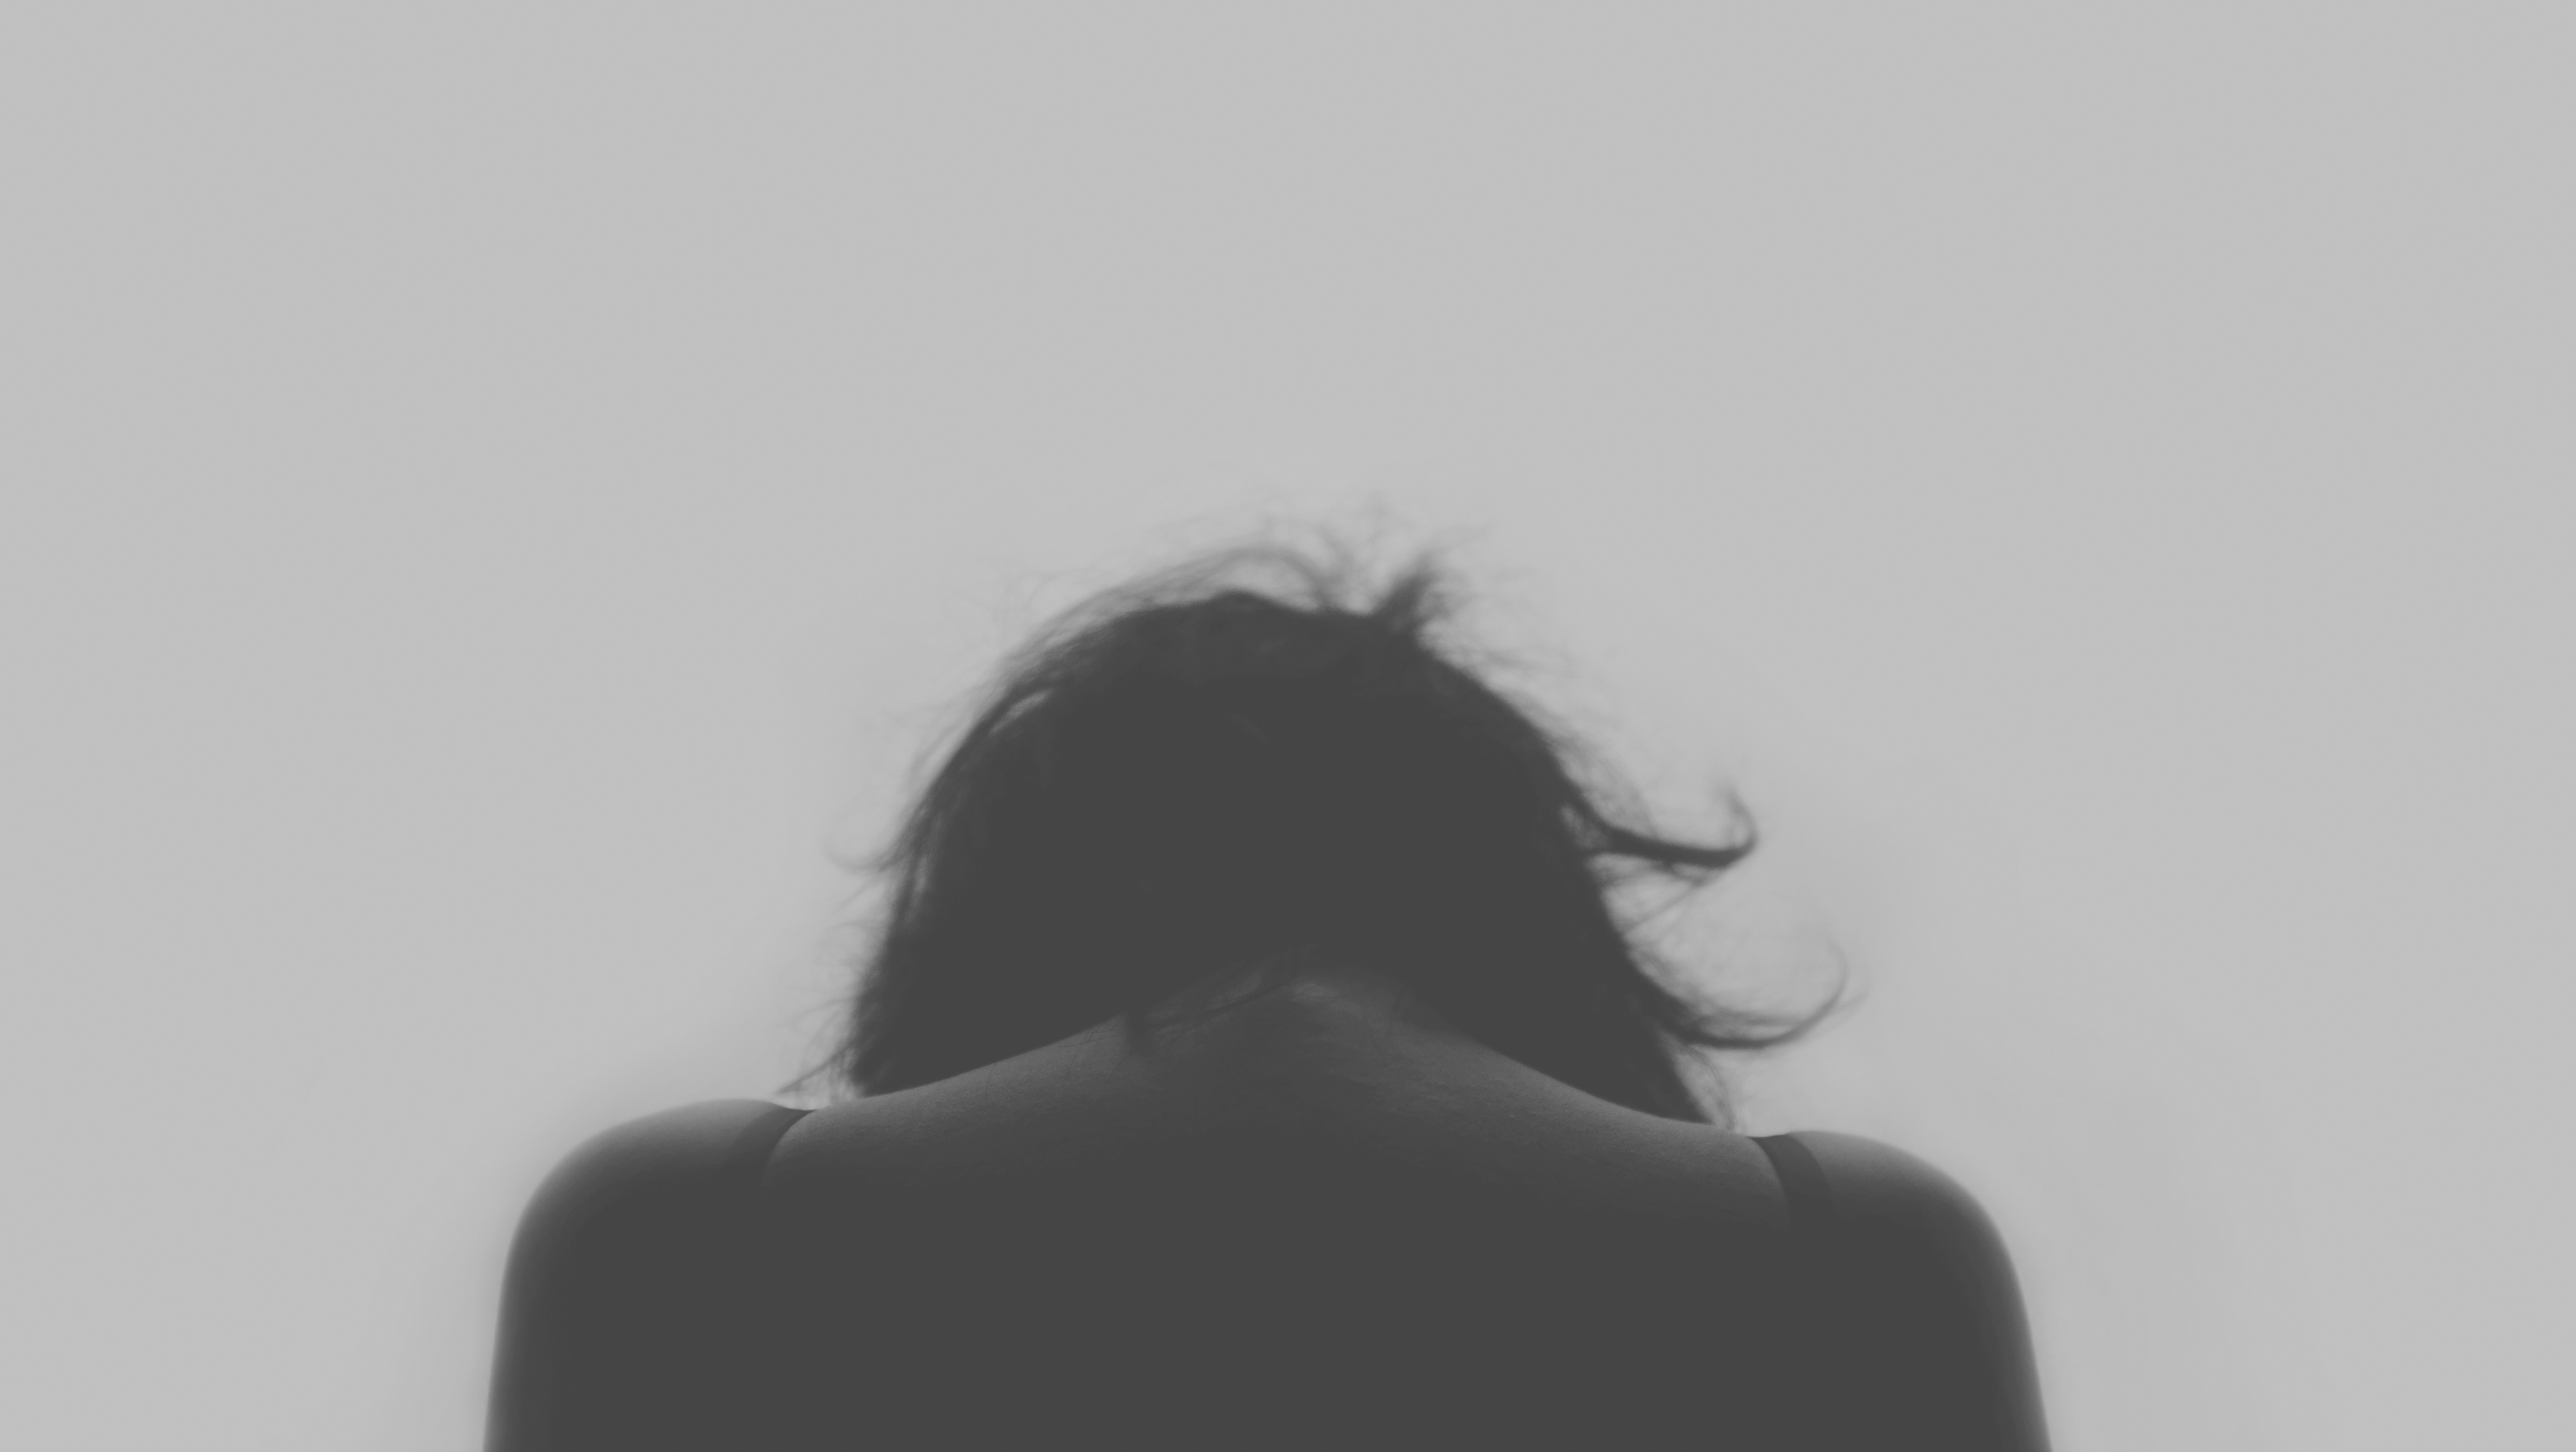 Fears | a black and white photo of a woman, head bowed